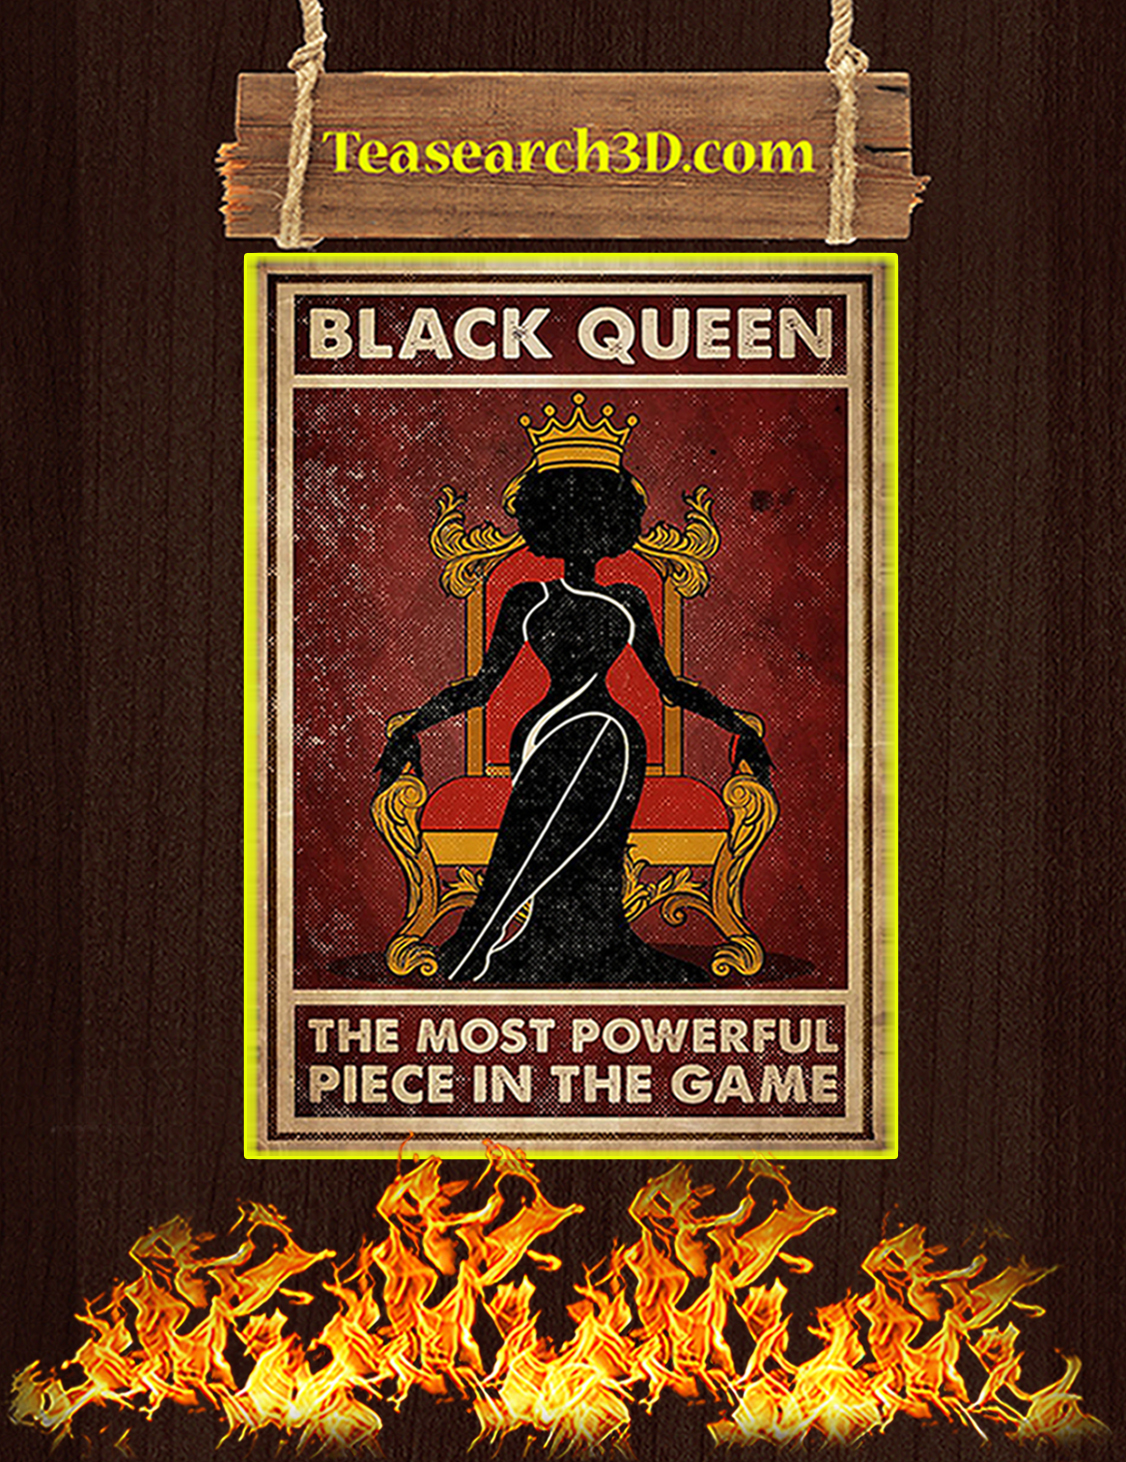 Black queen the most powerful piece in the game poster A3